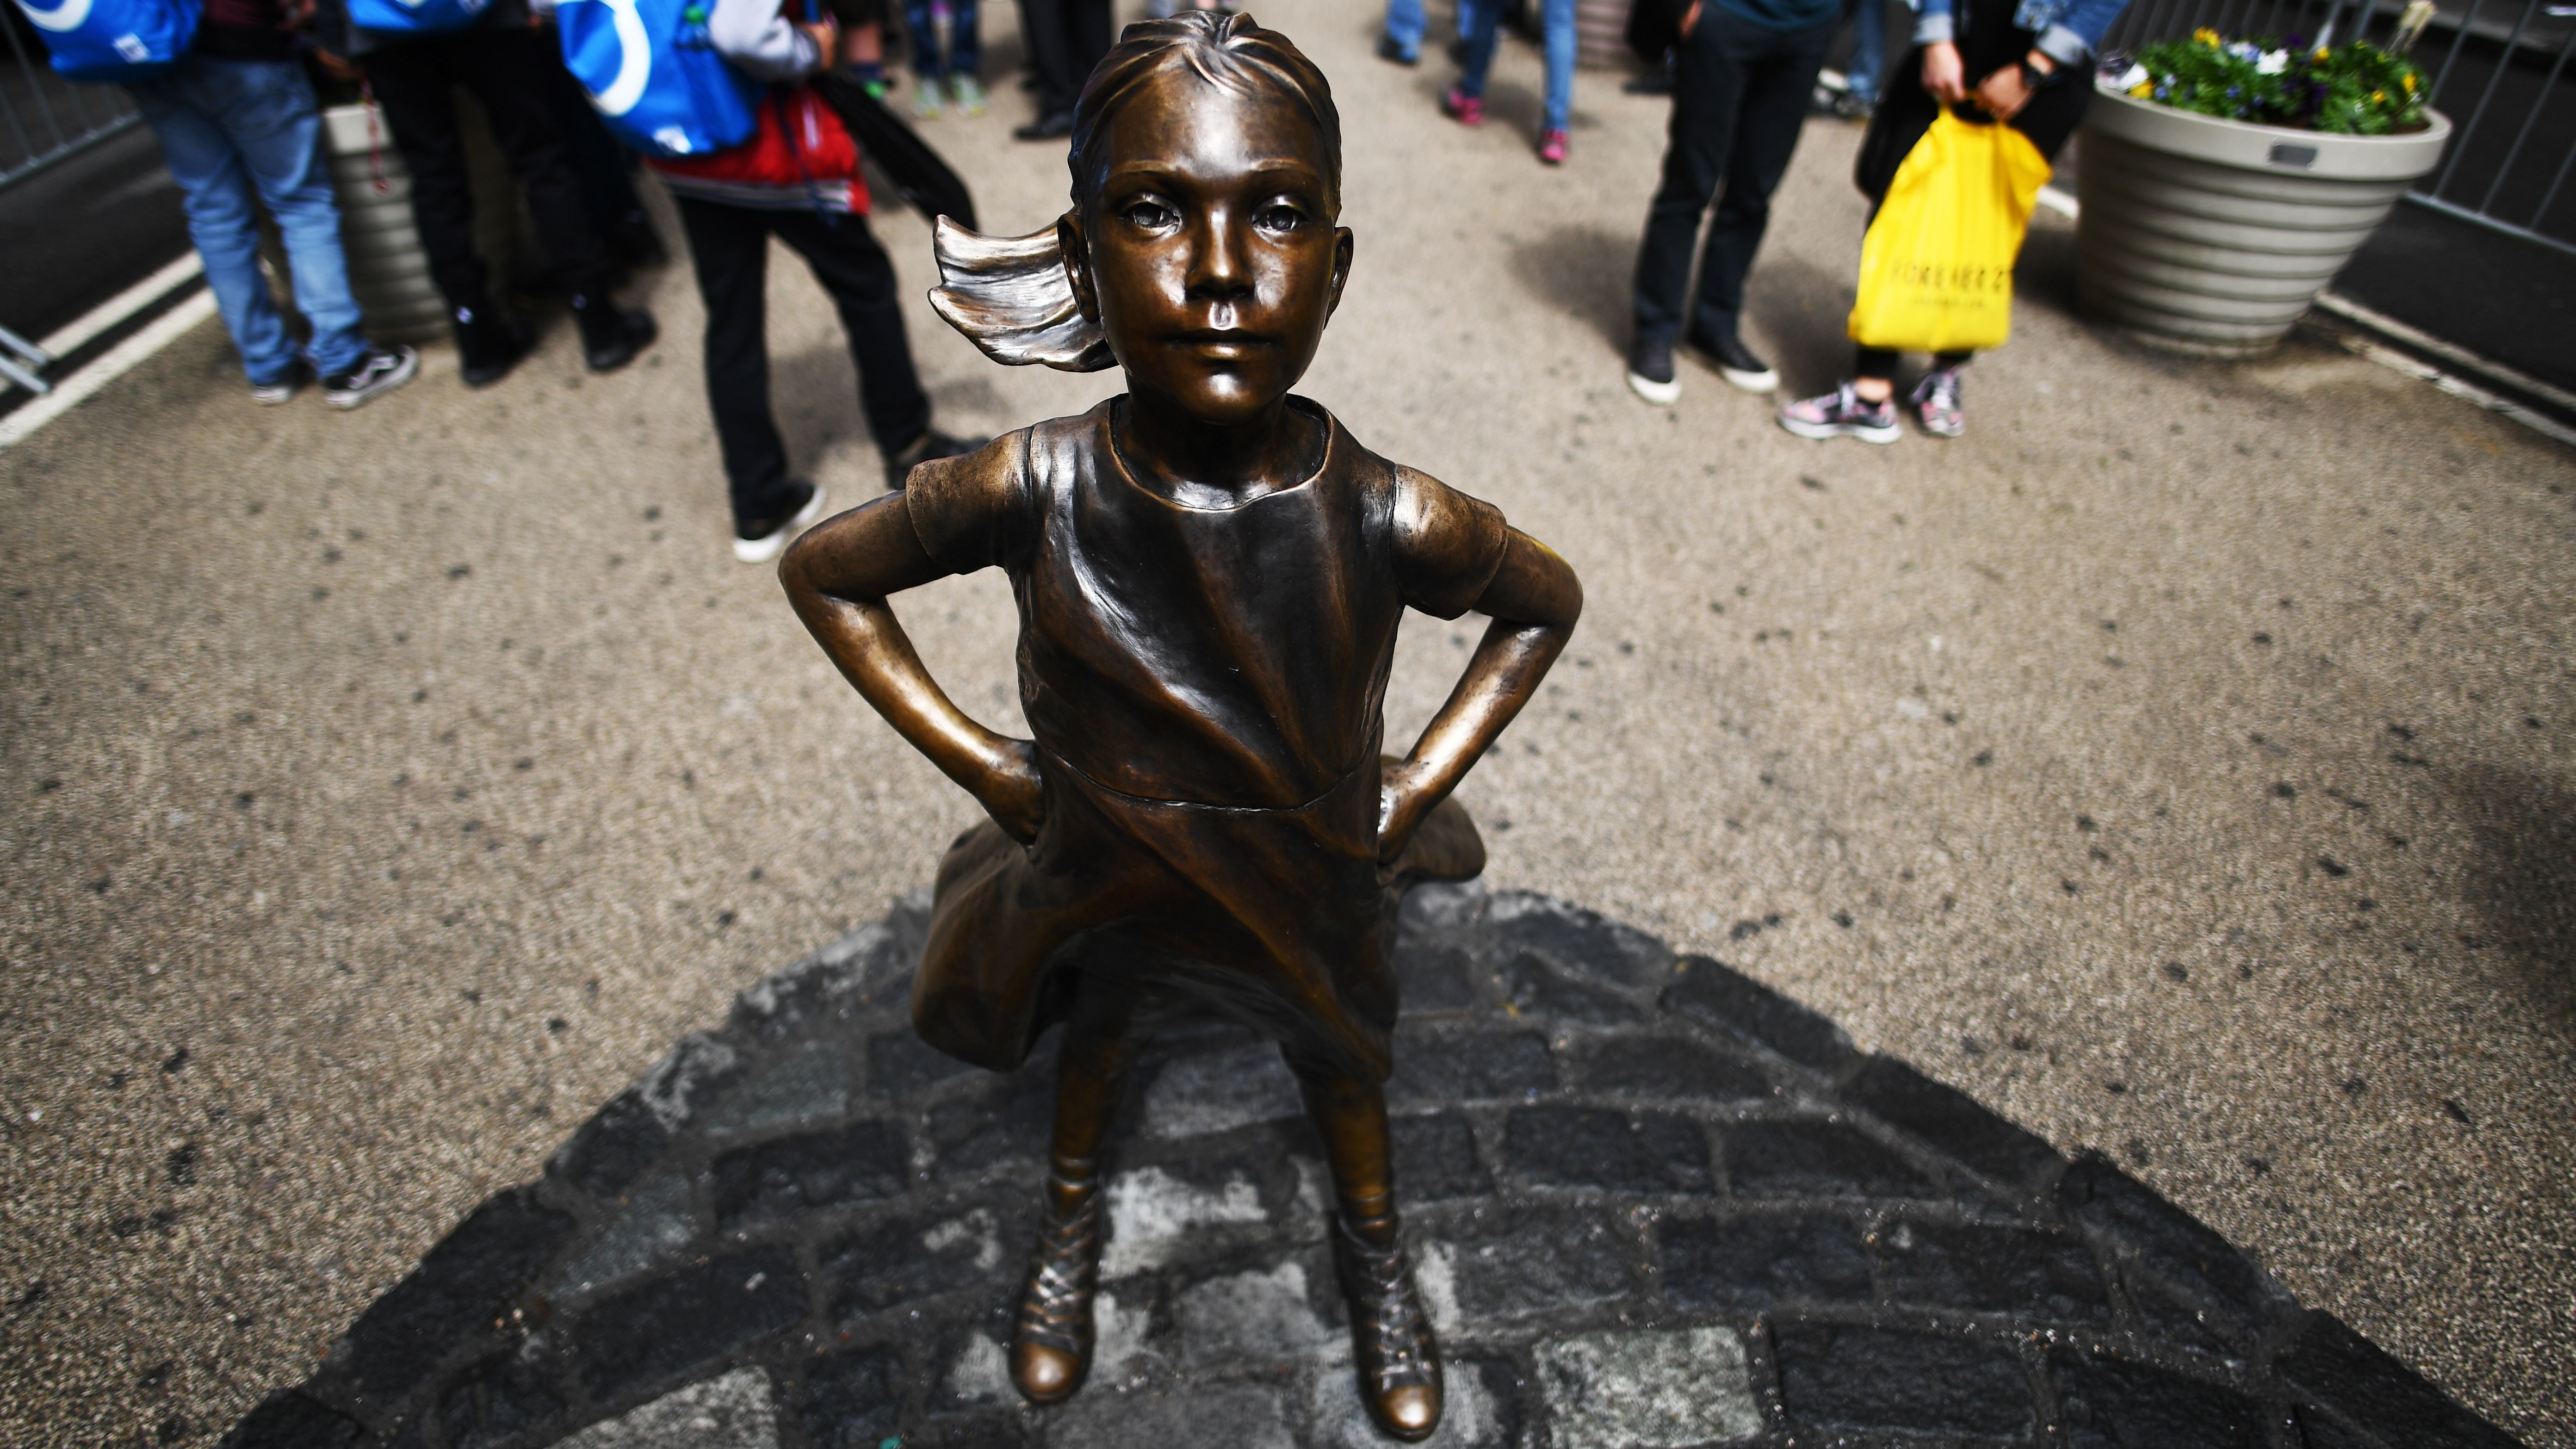 Urinating dog statue briefly placed near 'Fearless Girl' art